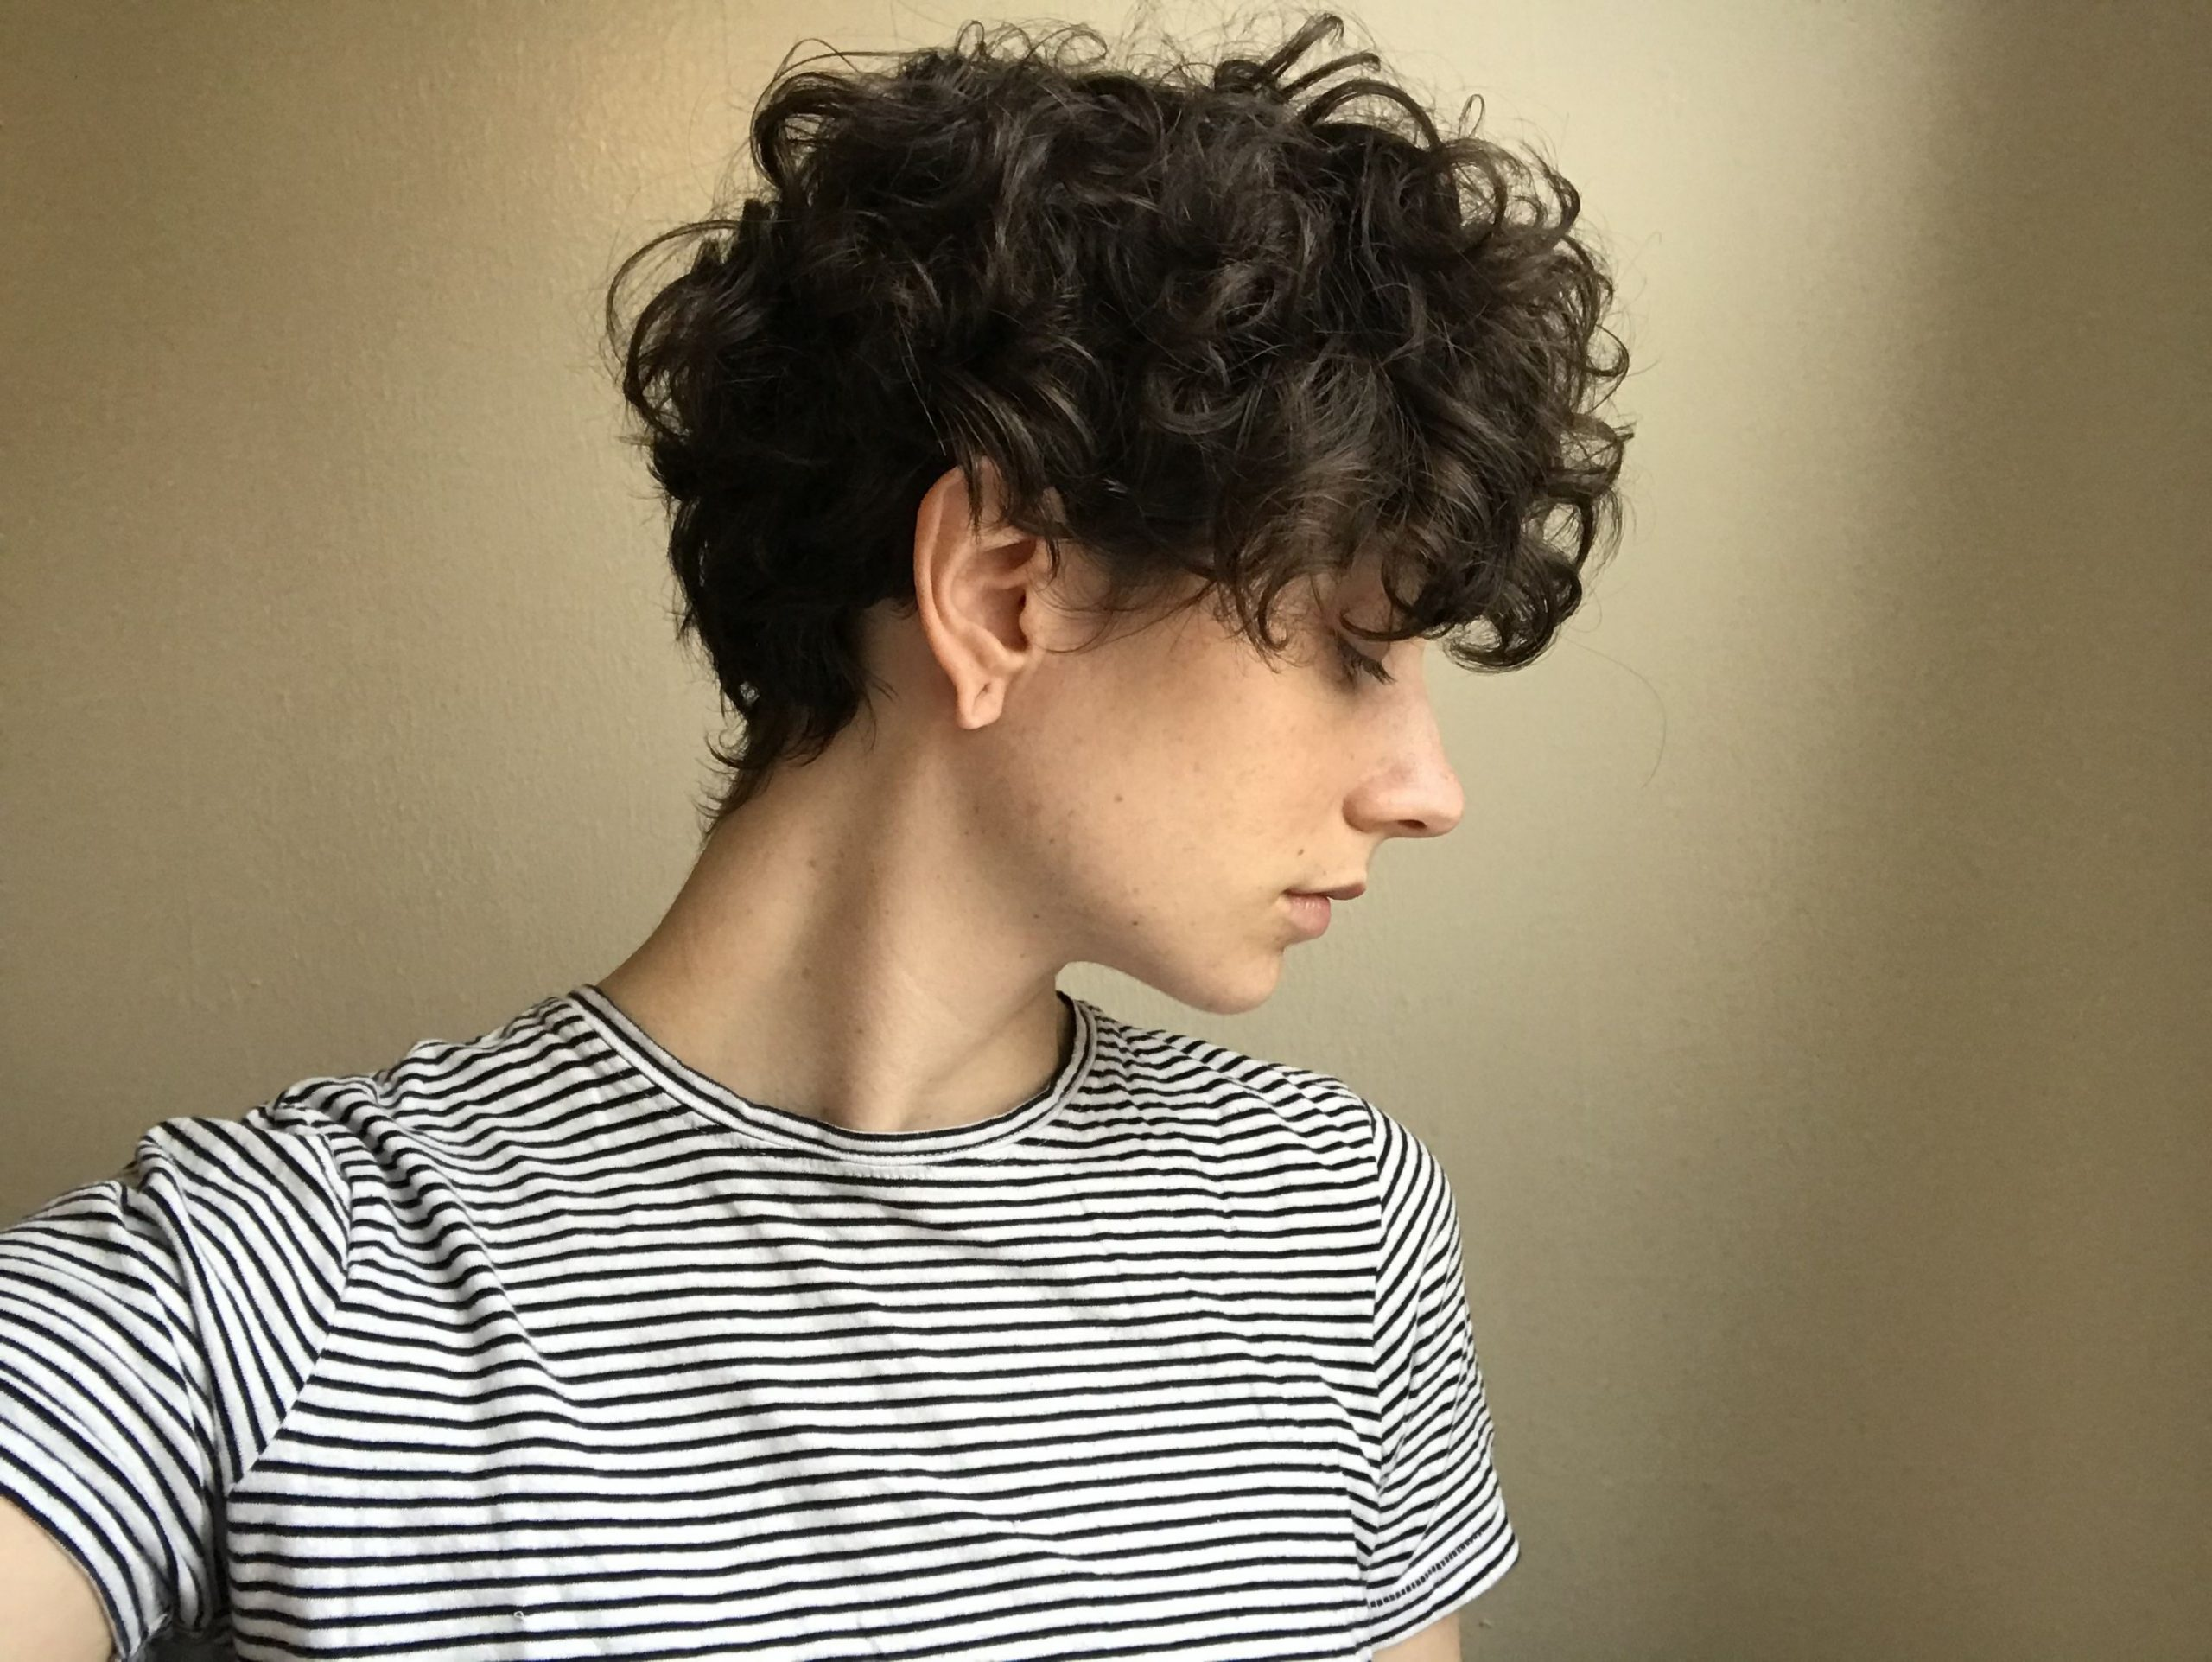 Growing Out Short Curly Hair Curly Hair Styles, Short Curly Hair Short Curly Undercut